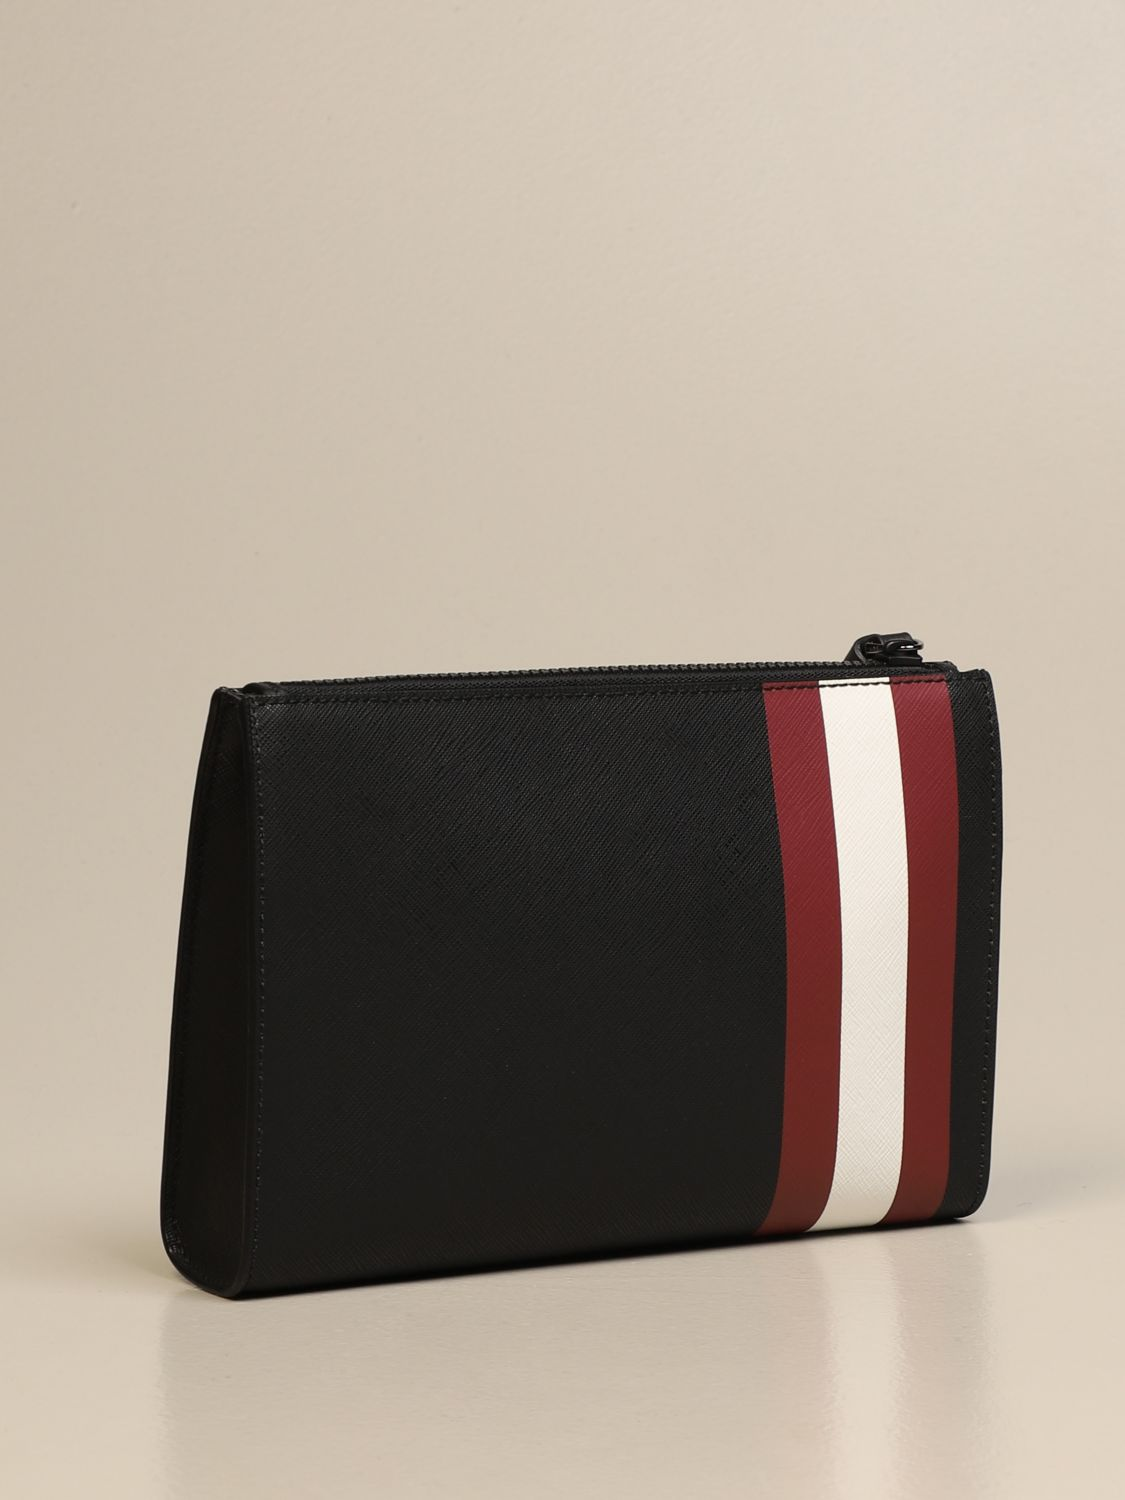 Briefcase Bally: Skid Bally clutch bag in coated canvas with trainspotting black 1 2